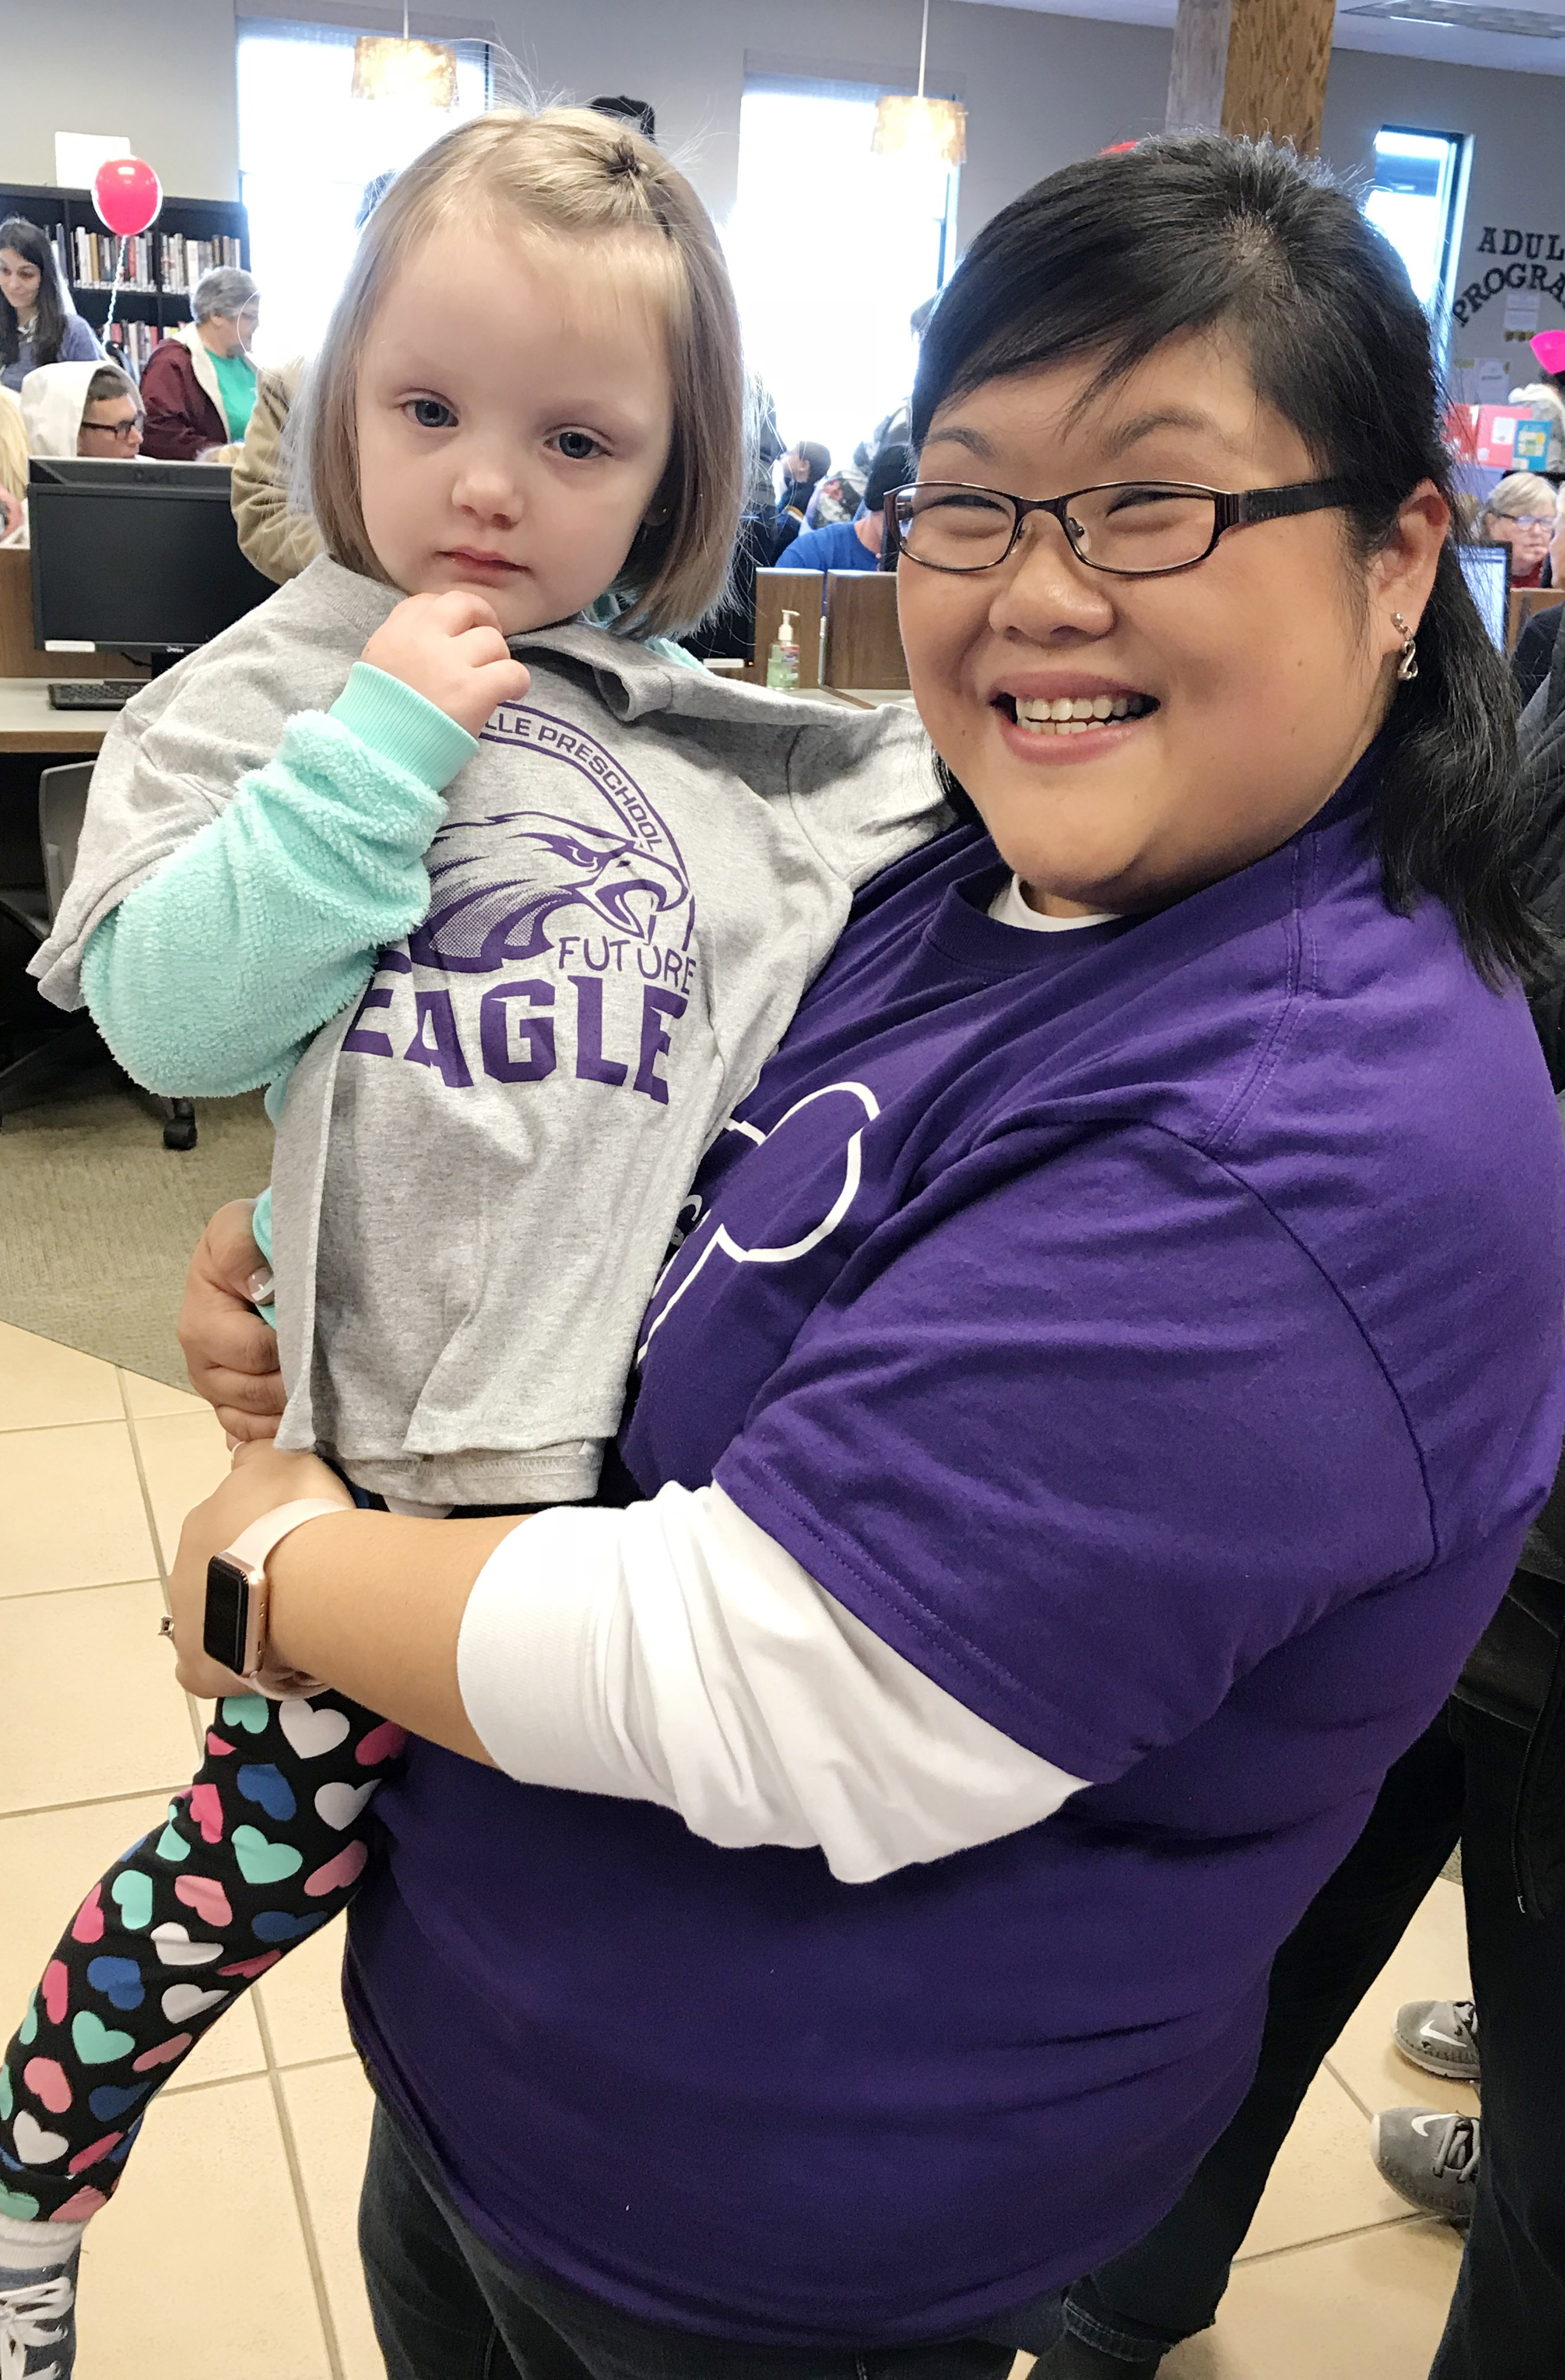 CES preschool assistant Brittany Johnson poses for a photo with Karlie Peppers, who is a future Eagle student.